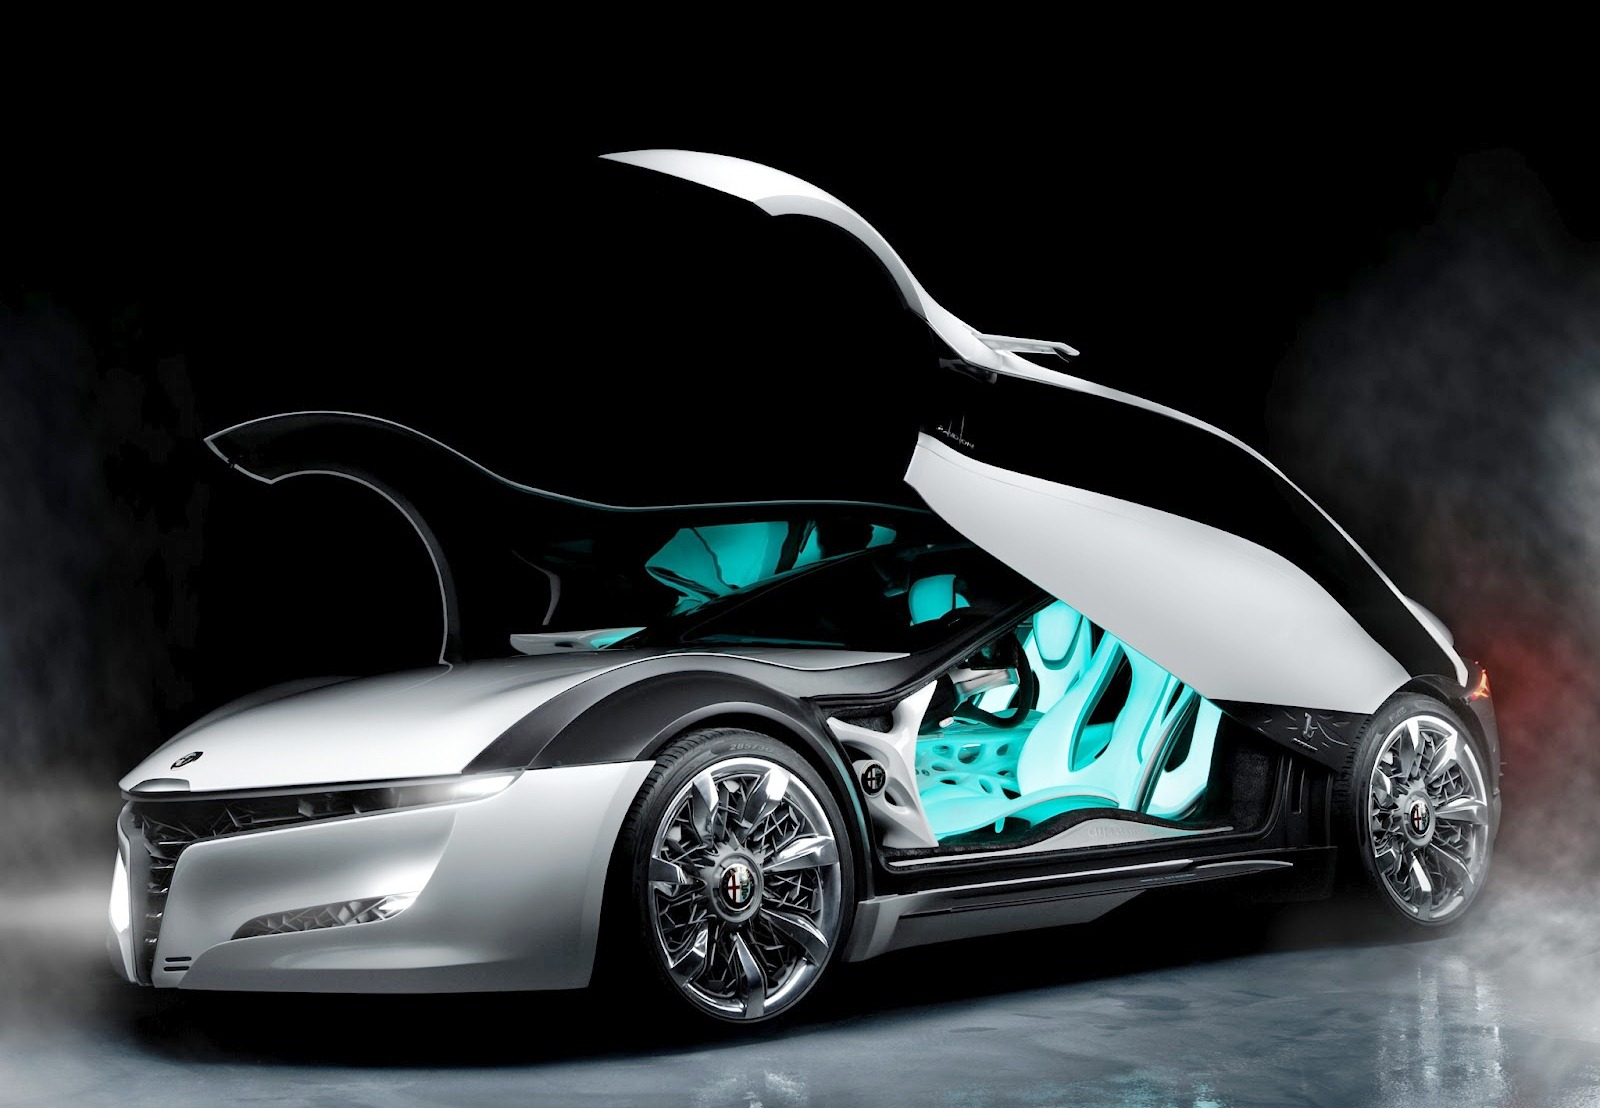 carnation auto blog 2010 bertone alfa romeo pandion concept an amazing looking extreme sports car. Black Bedroom Furniture Sets. Home Design Ideas